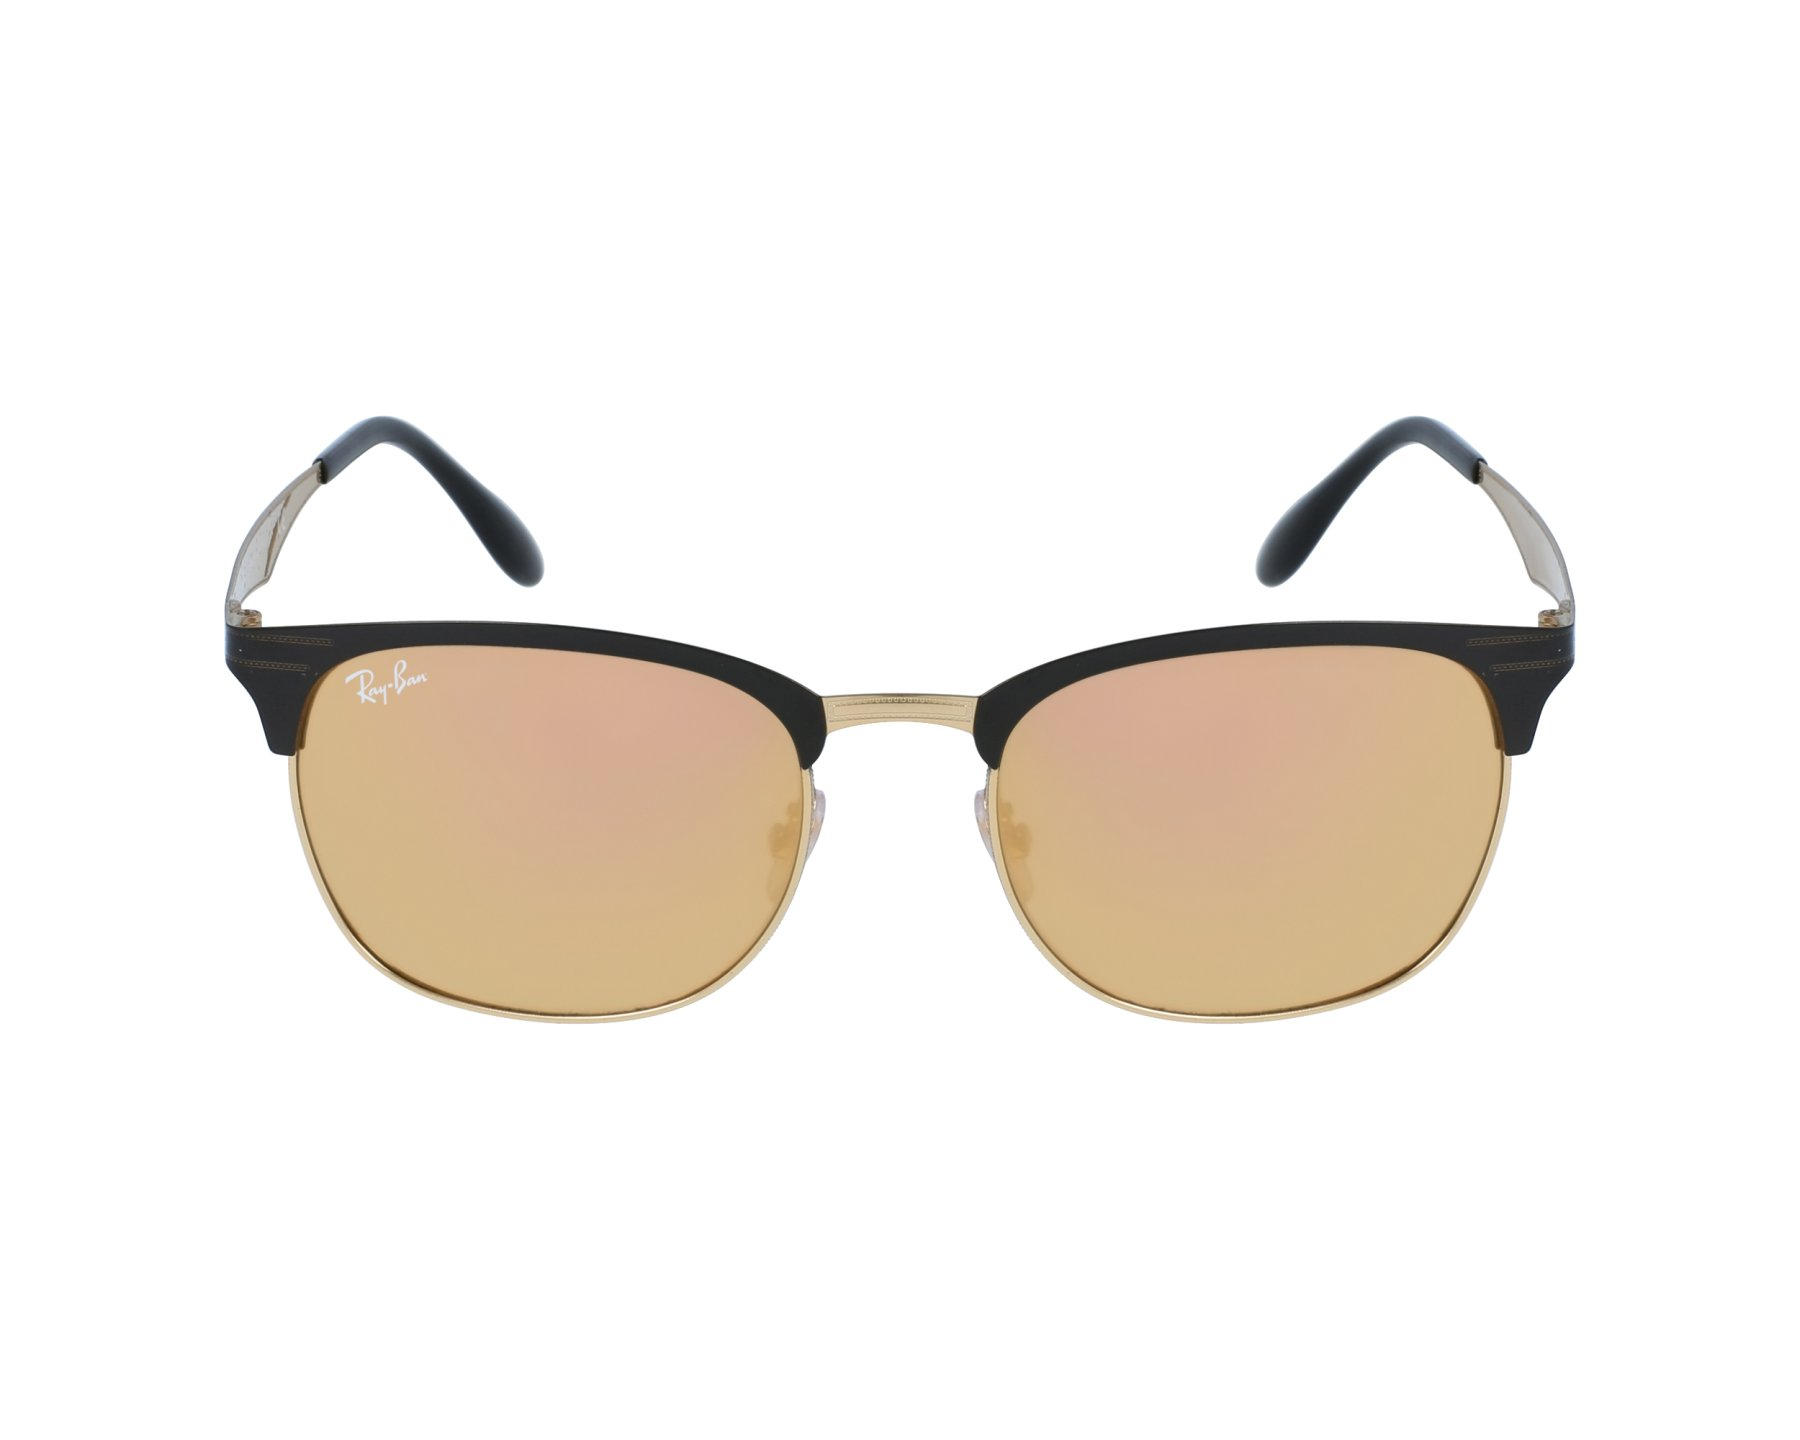 4d7fe961a29 Sunglasses Ray-Ban RB-3538 187 2Y 53-19 Gold Black profile